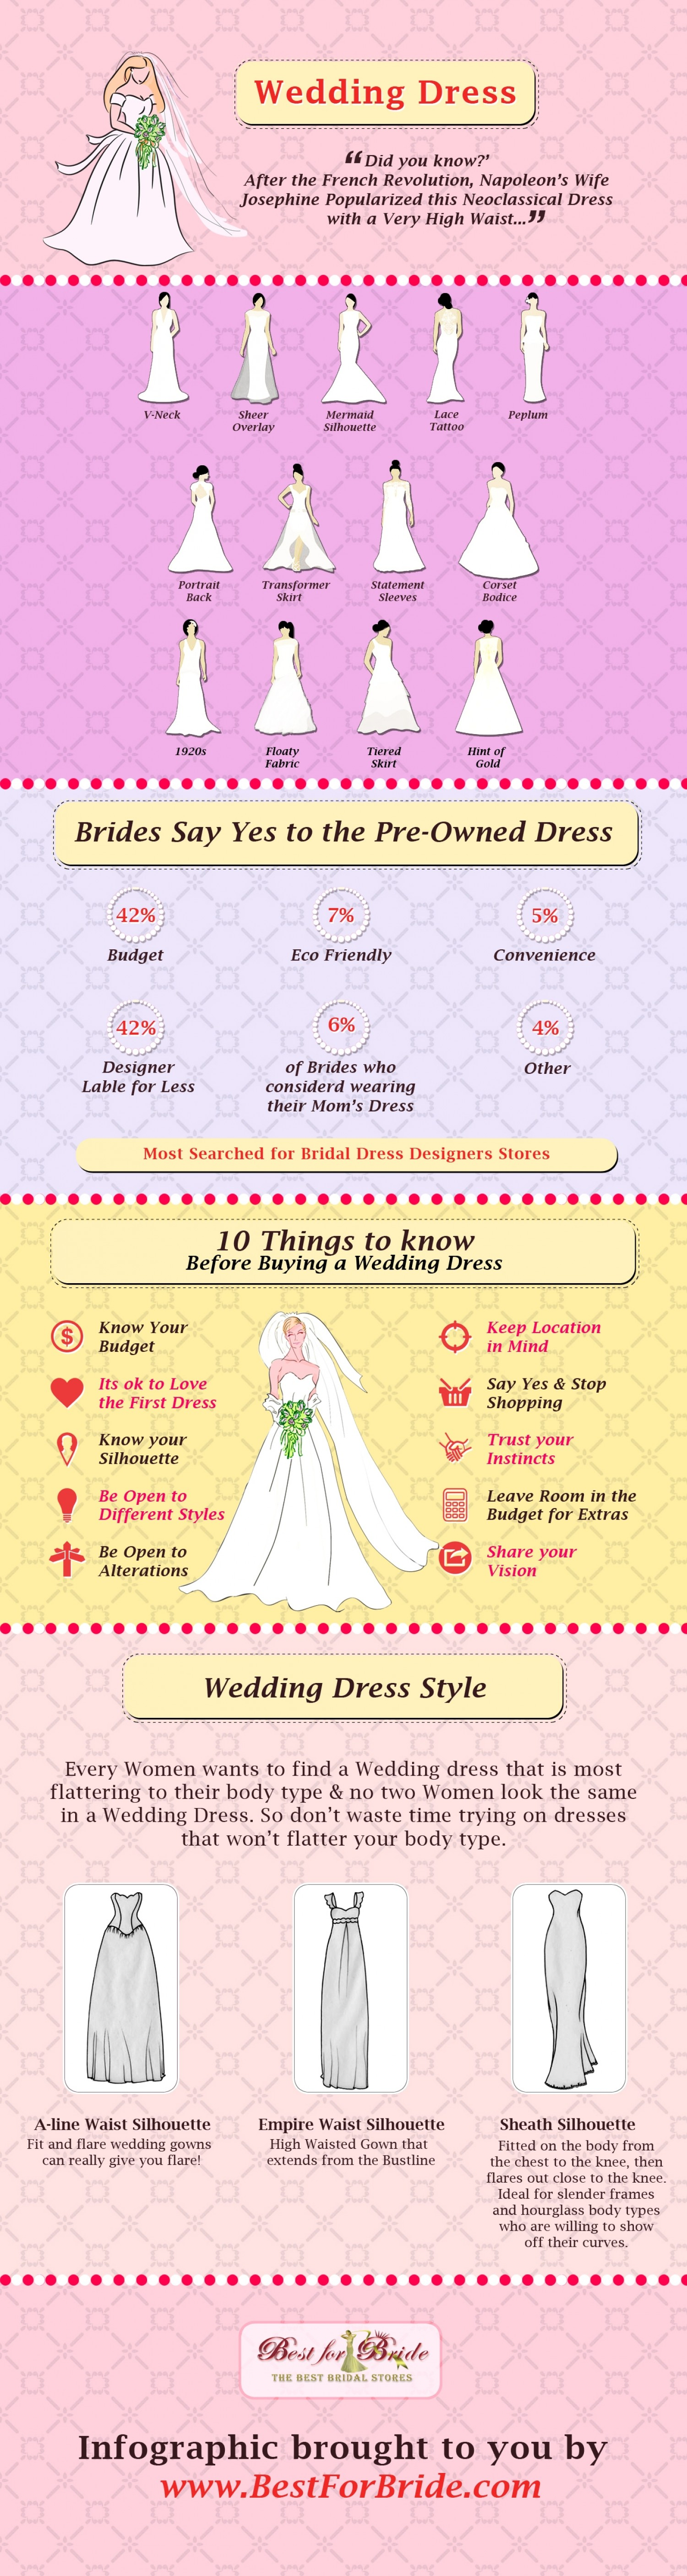 15 best-for-bride_52d0cba600e82_w1500